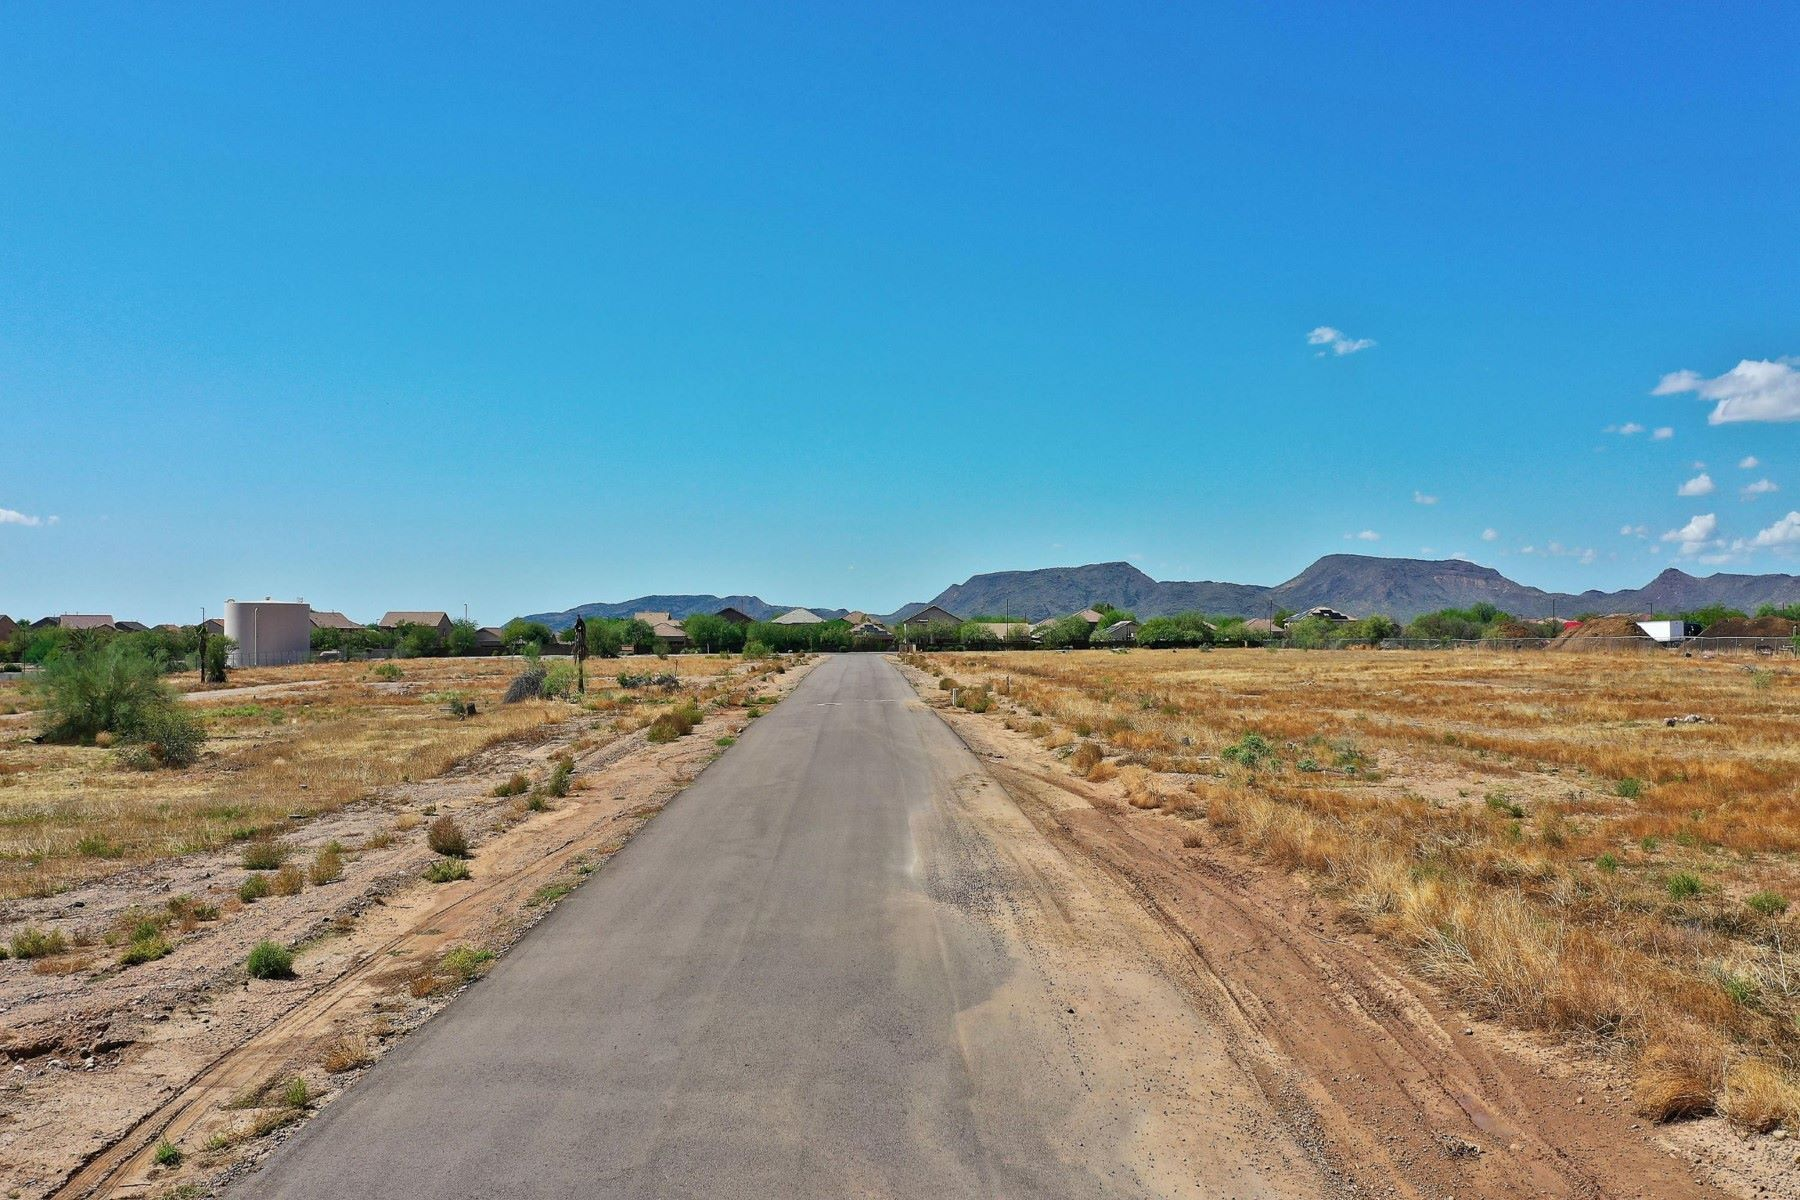 Land for Active at Desert Hills Anthem Addition 43240 N BLACK CANYON HWY 2 New River, Arizona 85087 United States